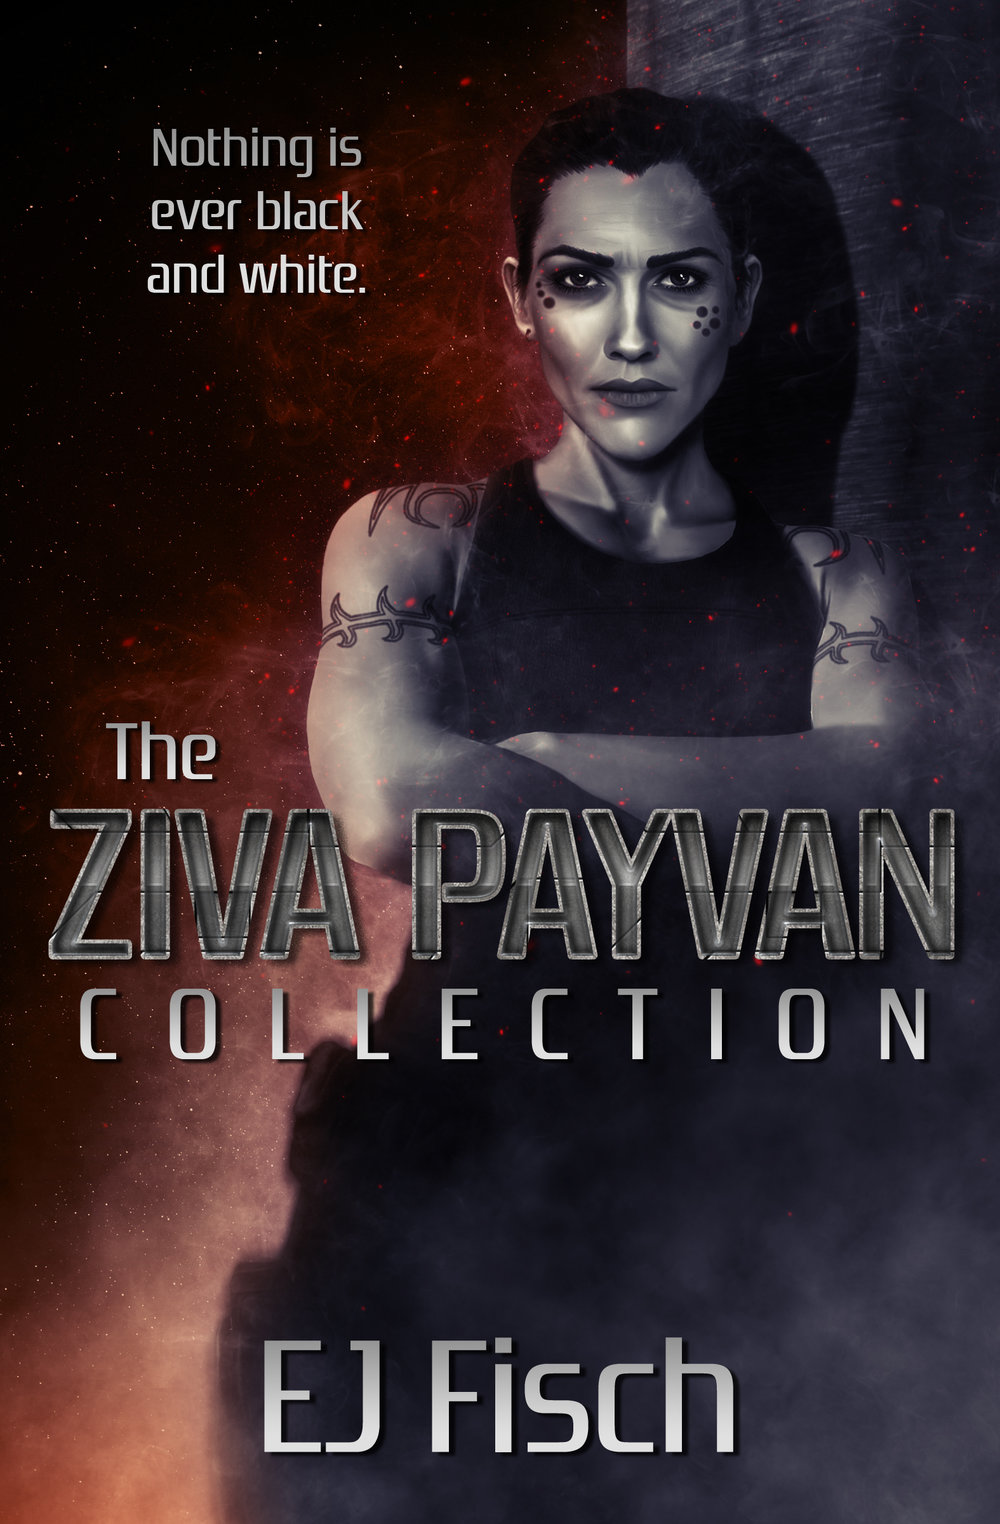 THE_ZIVA_PAYVAN_COLLECTION_cover_NEW.jpg